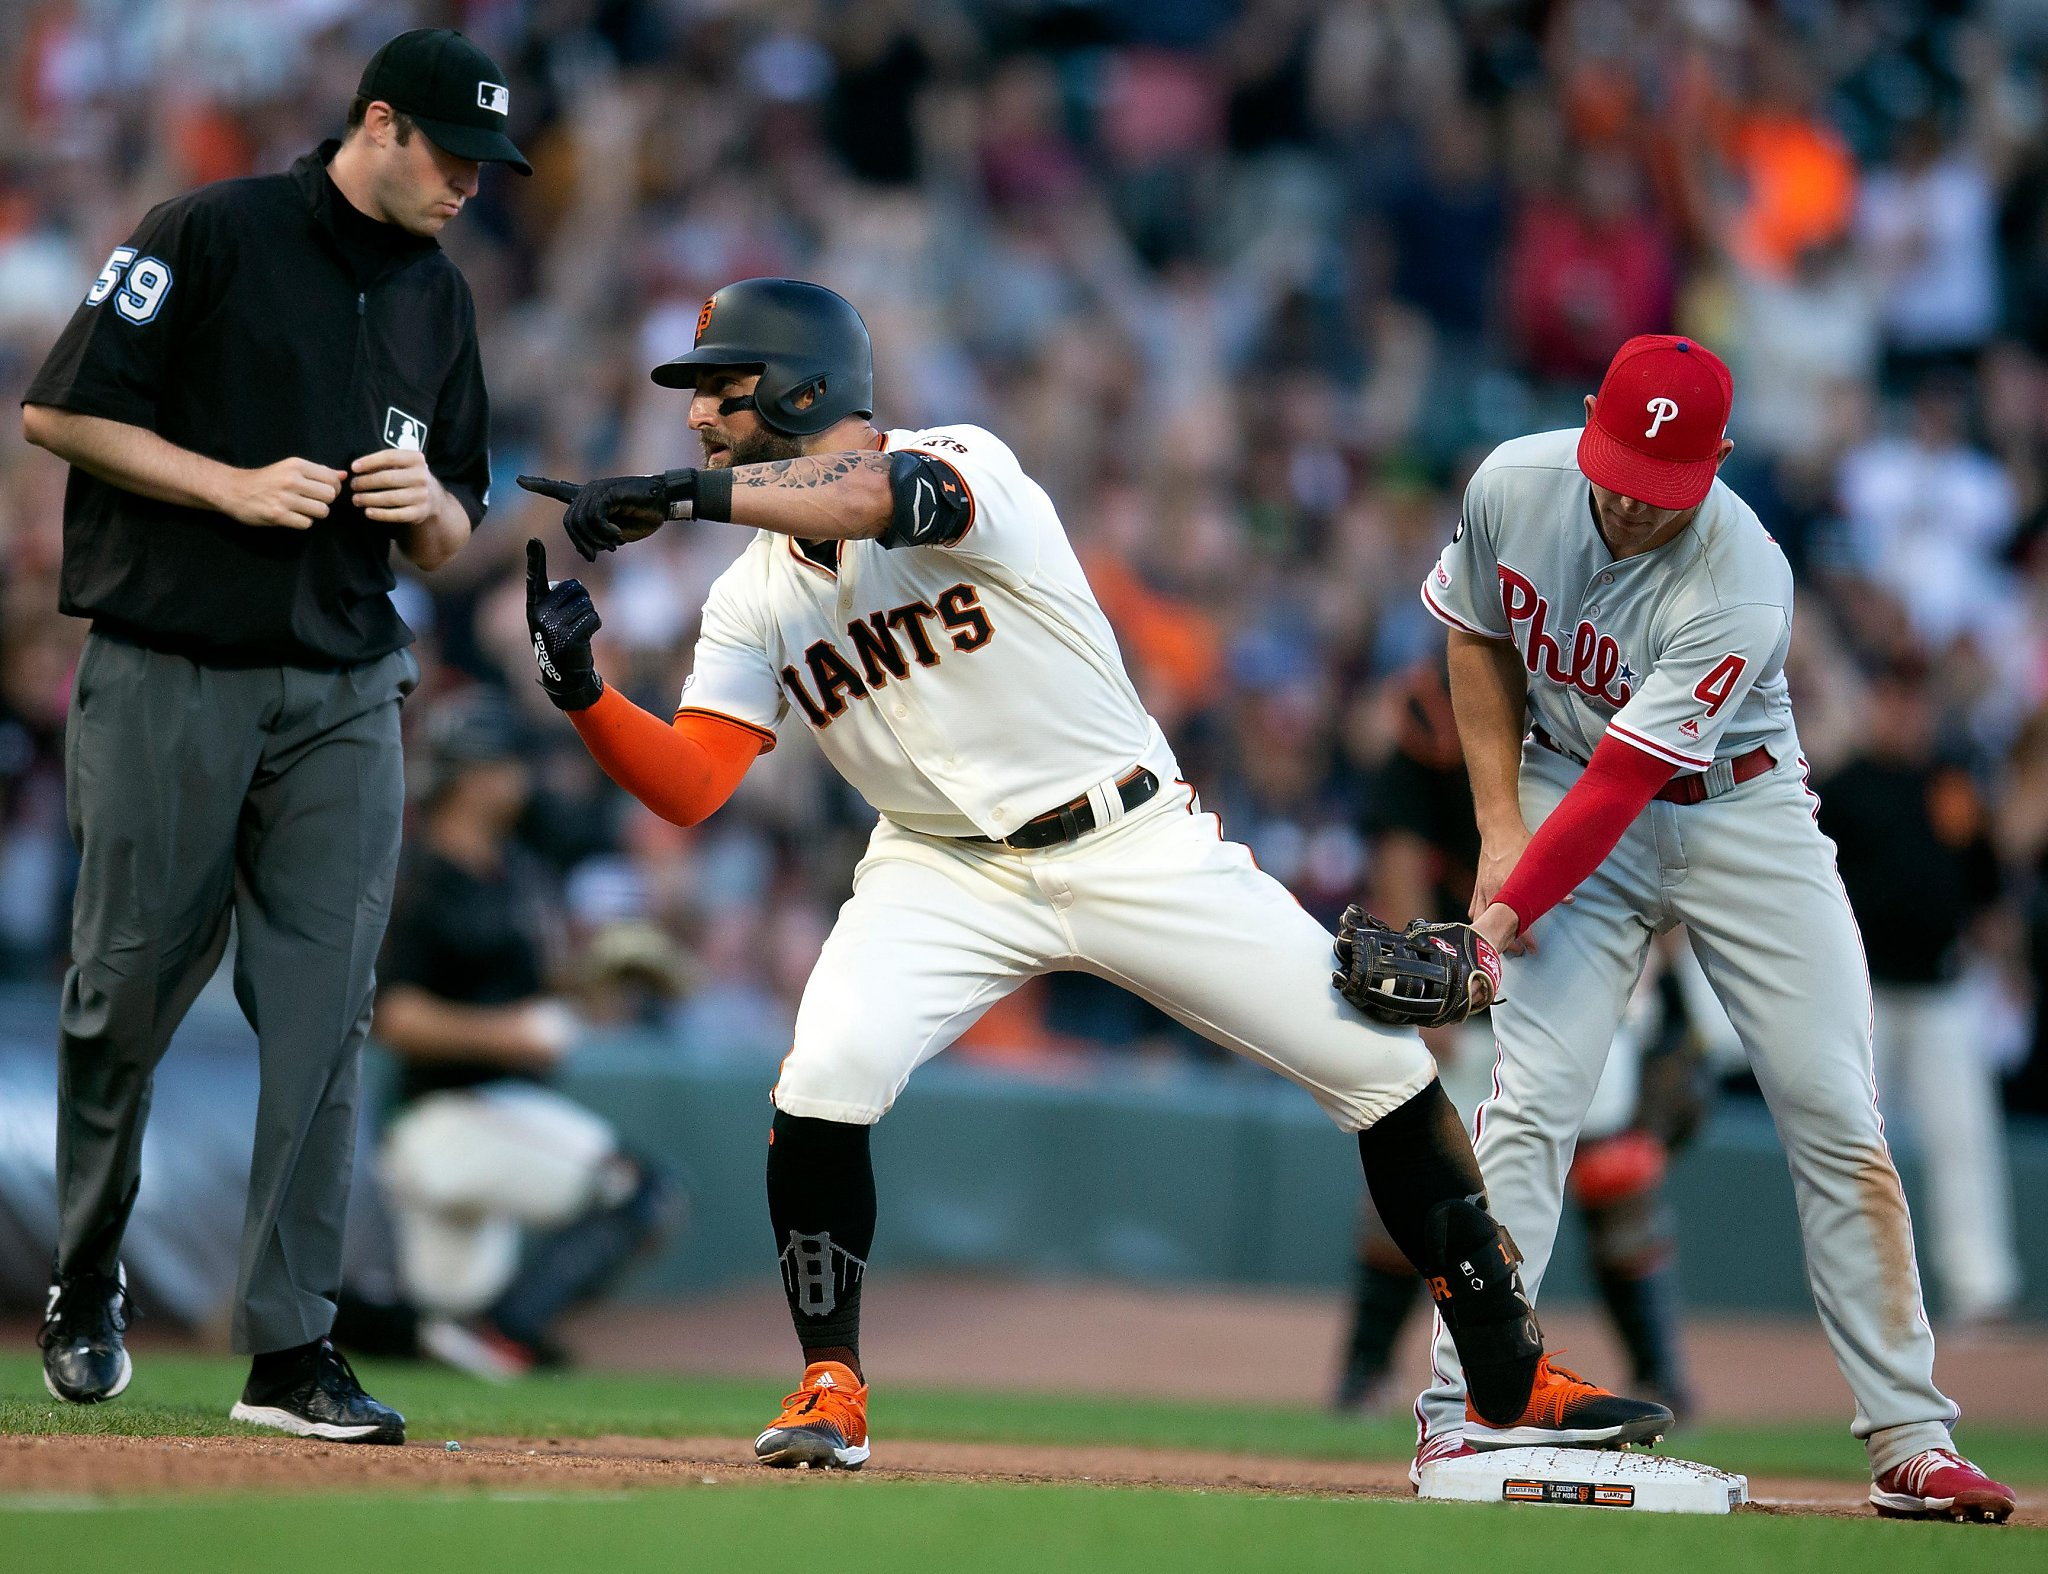 Giants take game, series from Phillies as Will Smith stars on the